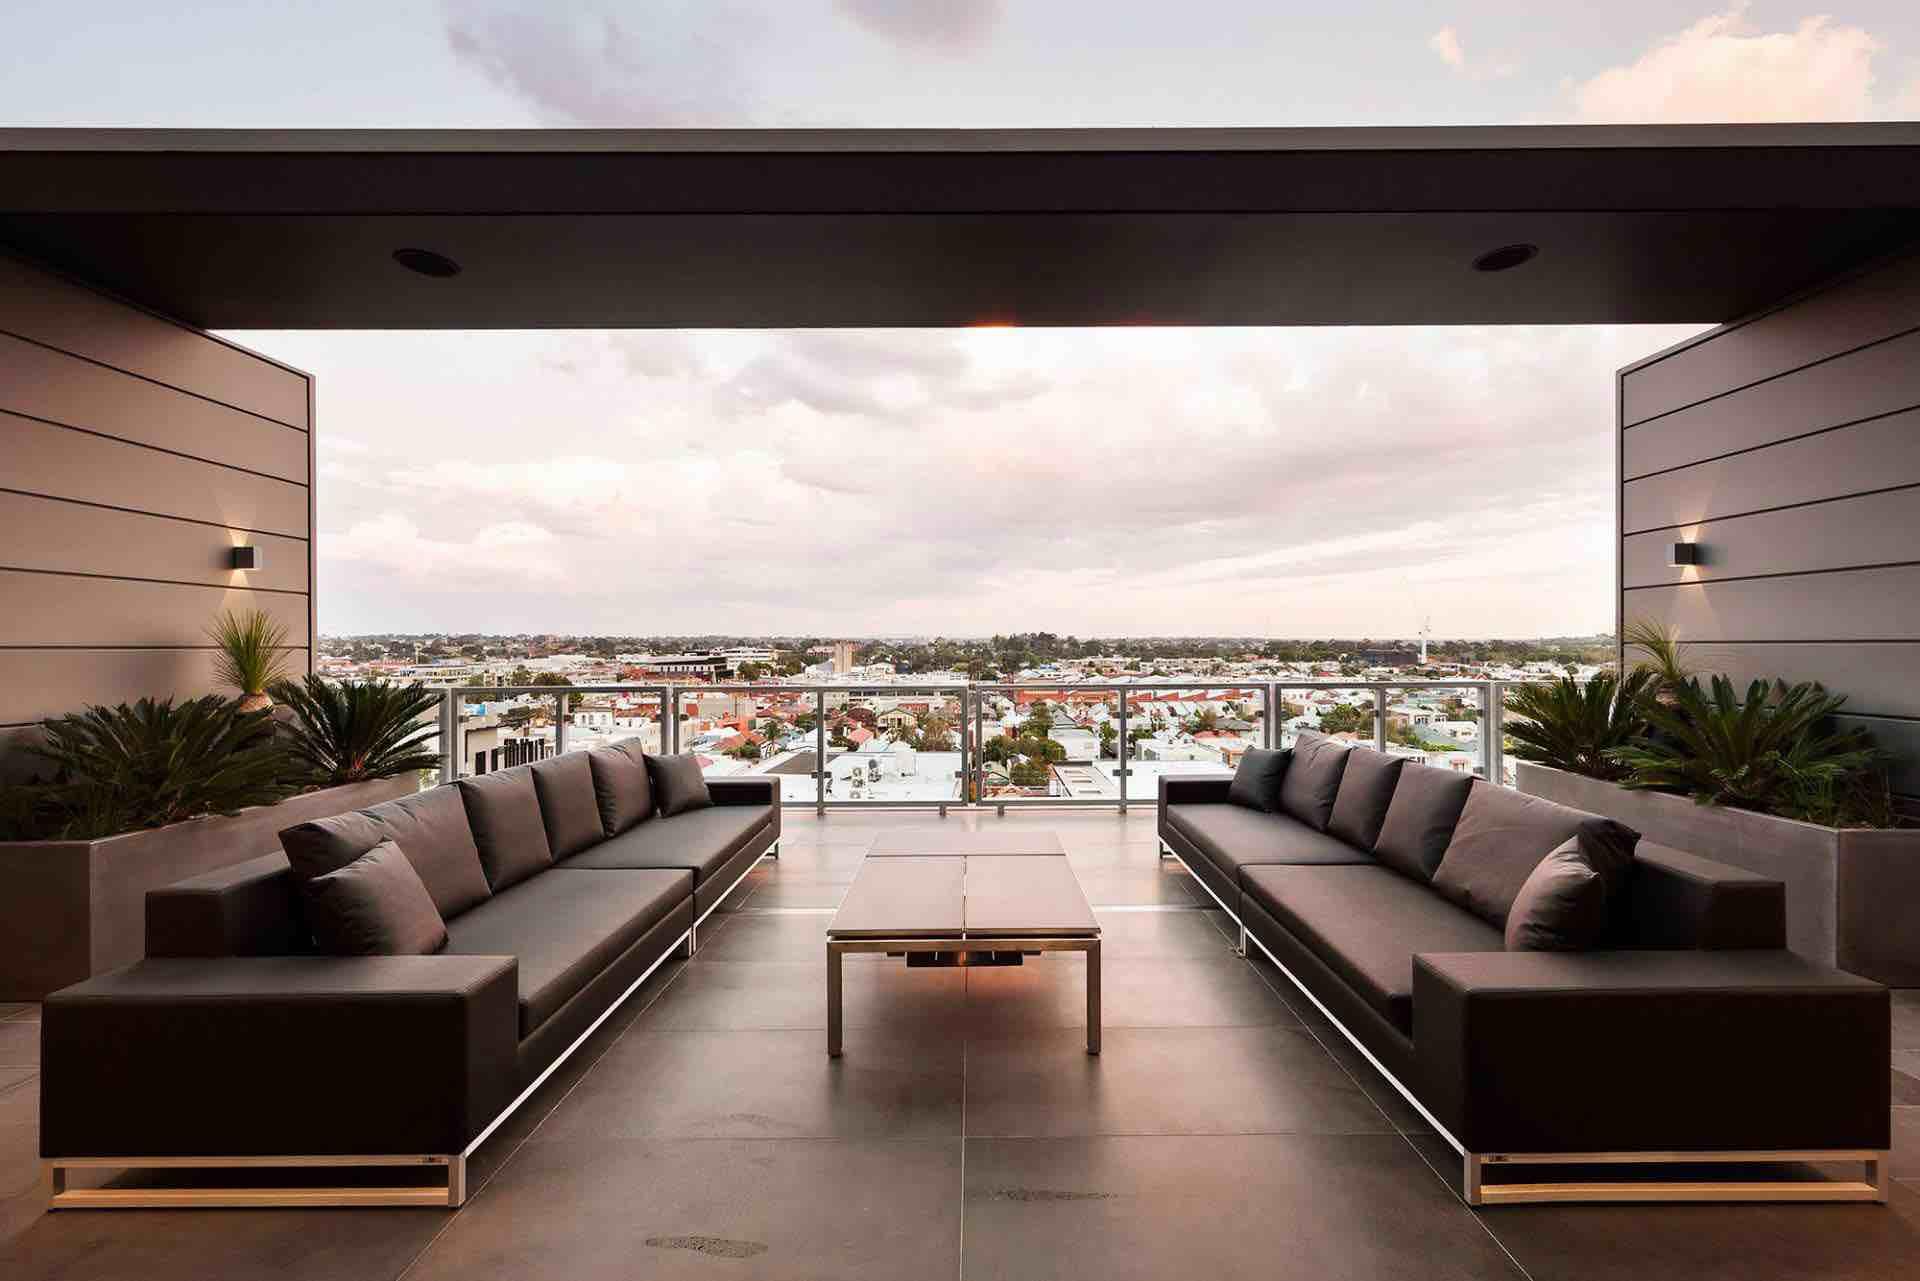 Luxurious penthouse with incredible views over the city of melbourne australia